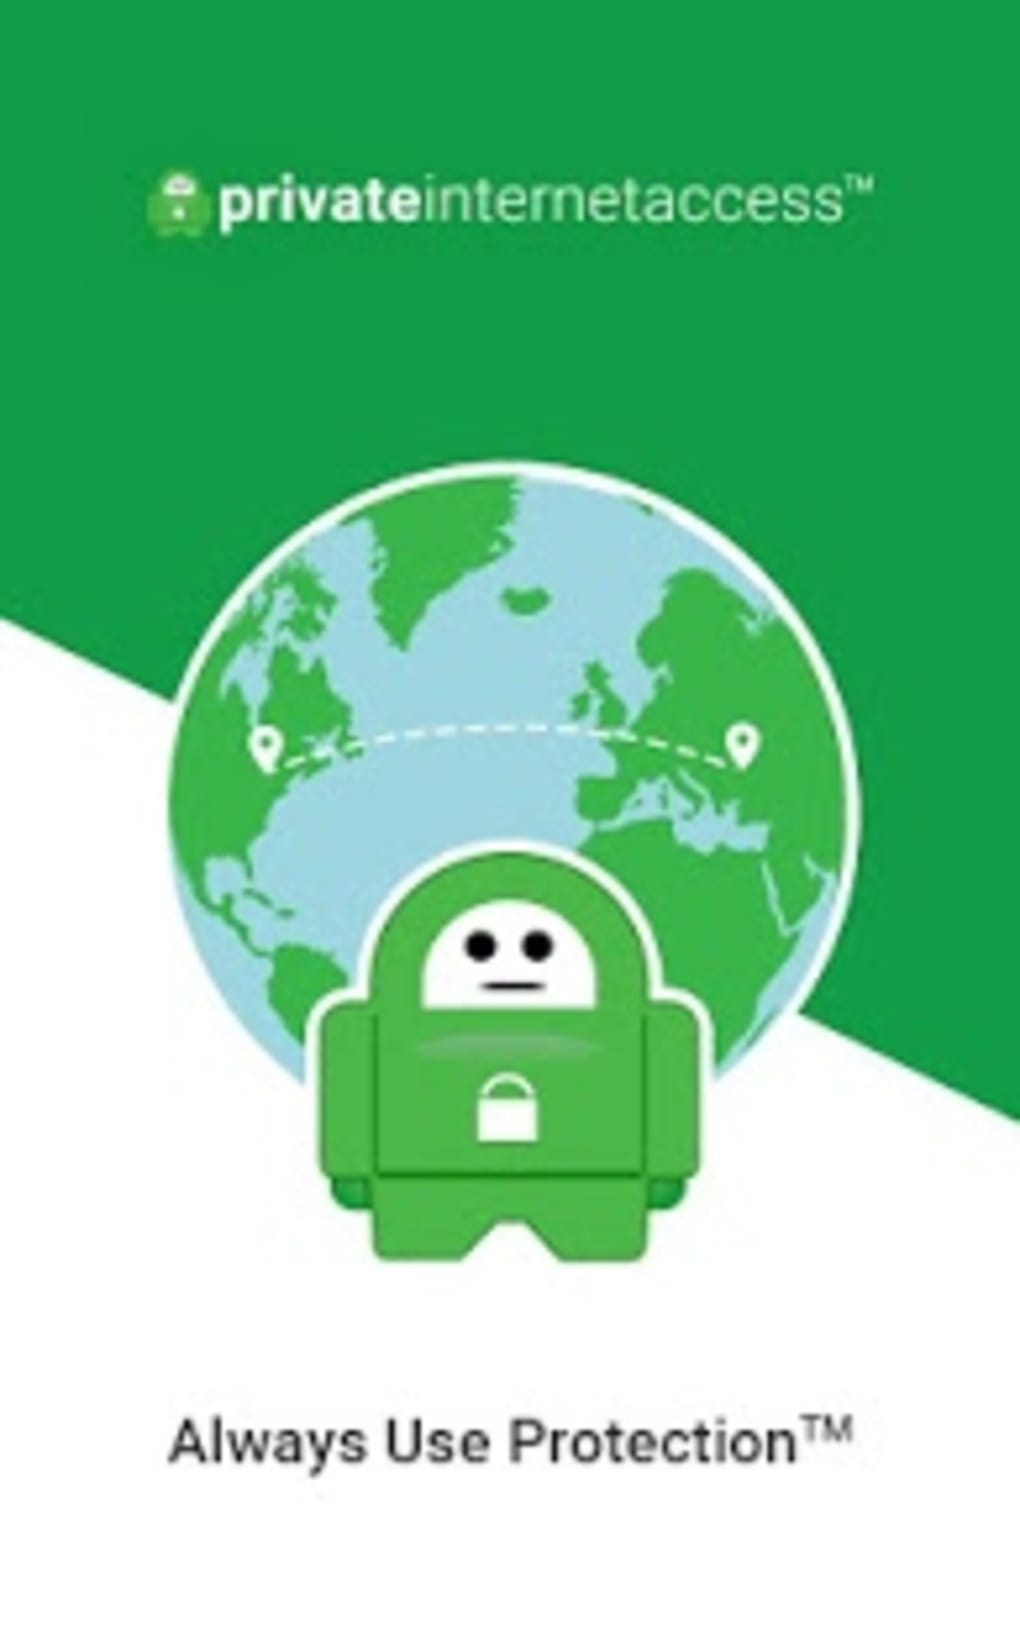 VPN by Private Internet Access for Android - Download